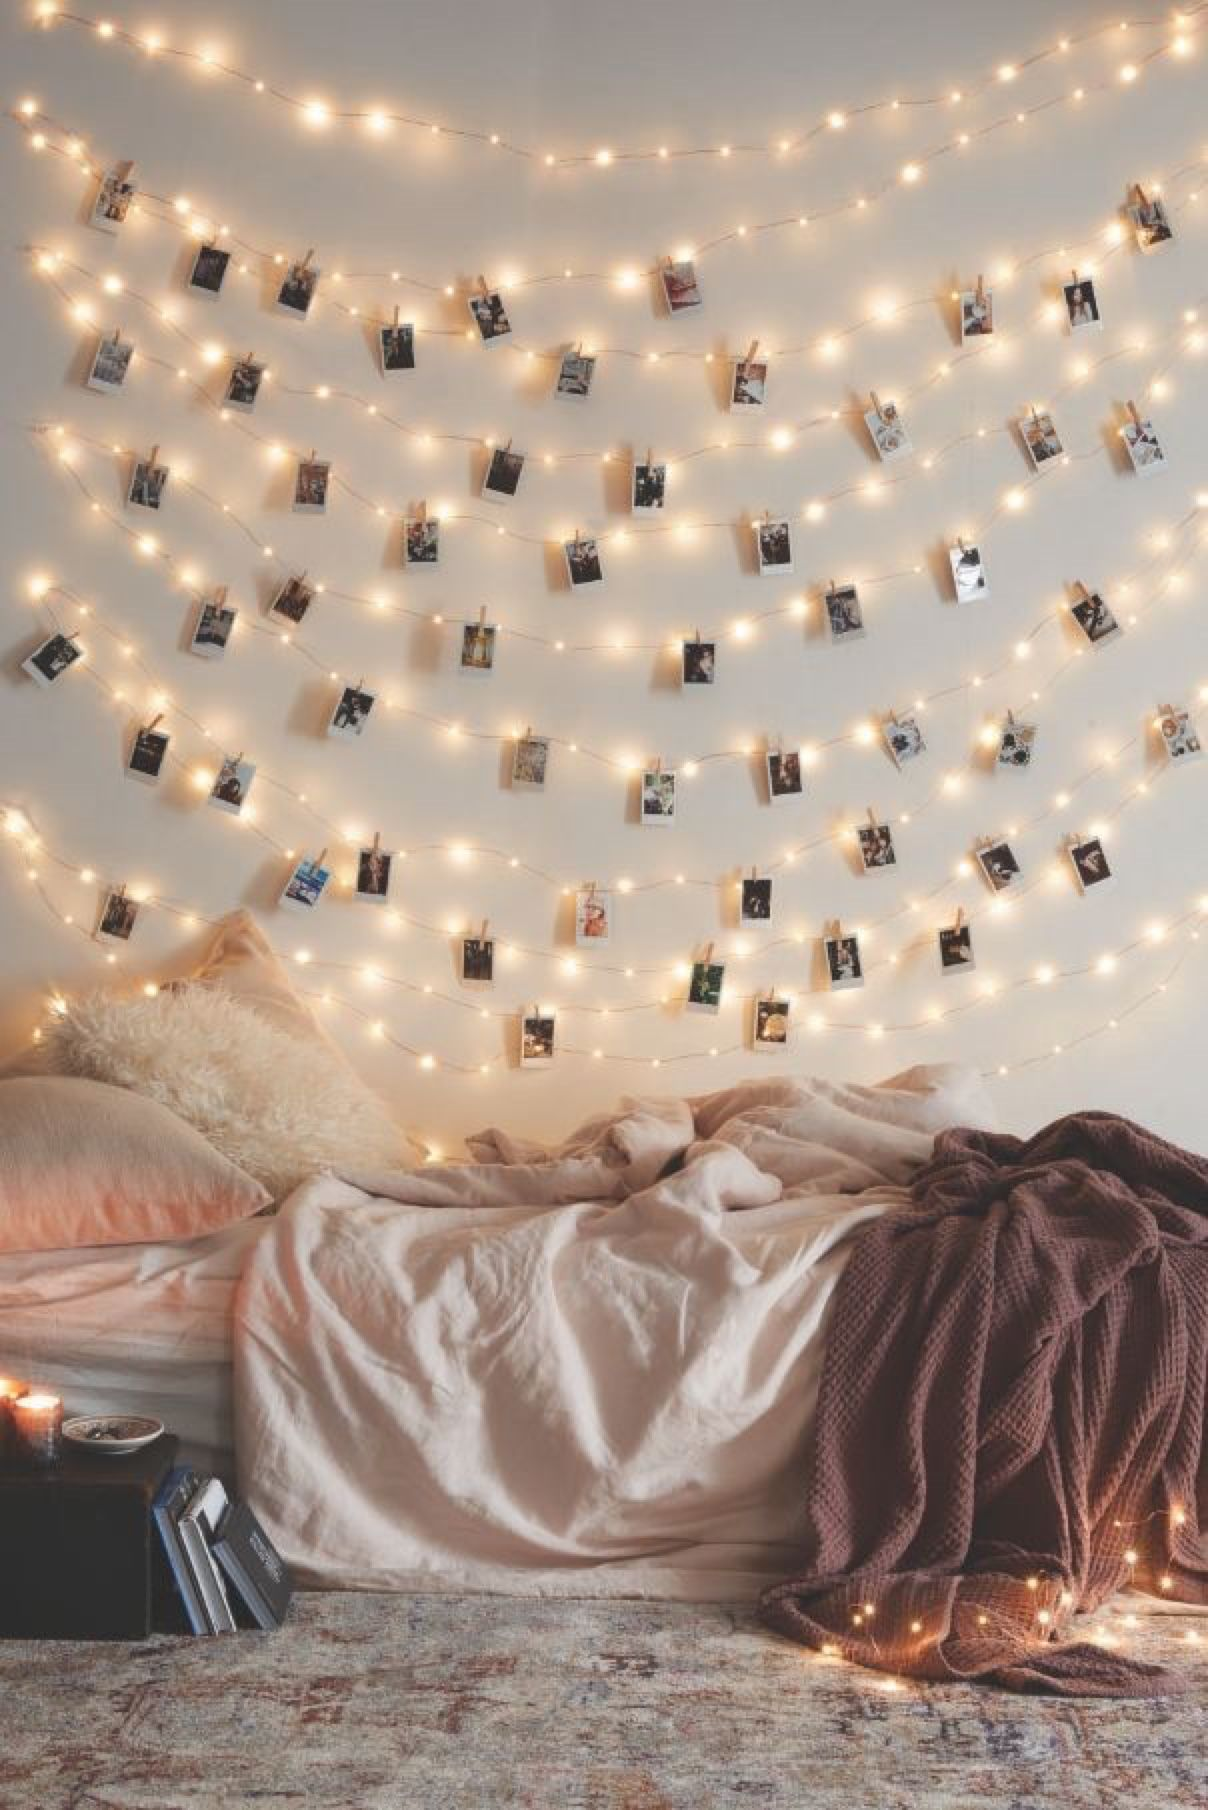 Bedroom christmas lights quotes - Cool Ways To Use Christmas Lights Frameless Photos Best Easy Diy Ideas For String Lights For Room Decoration Home Decor And Creative Diy Bedroom